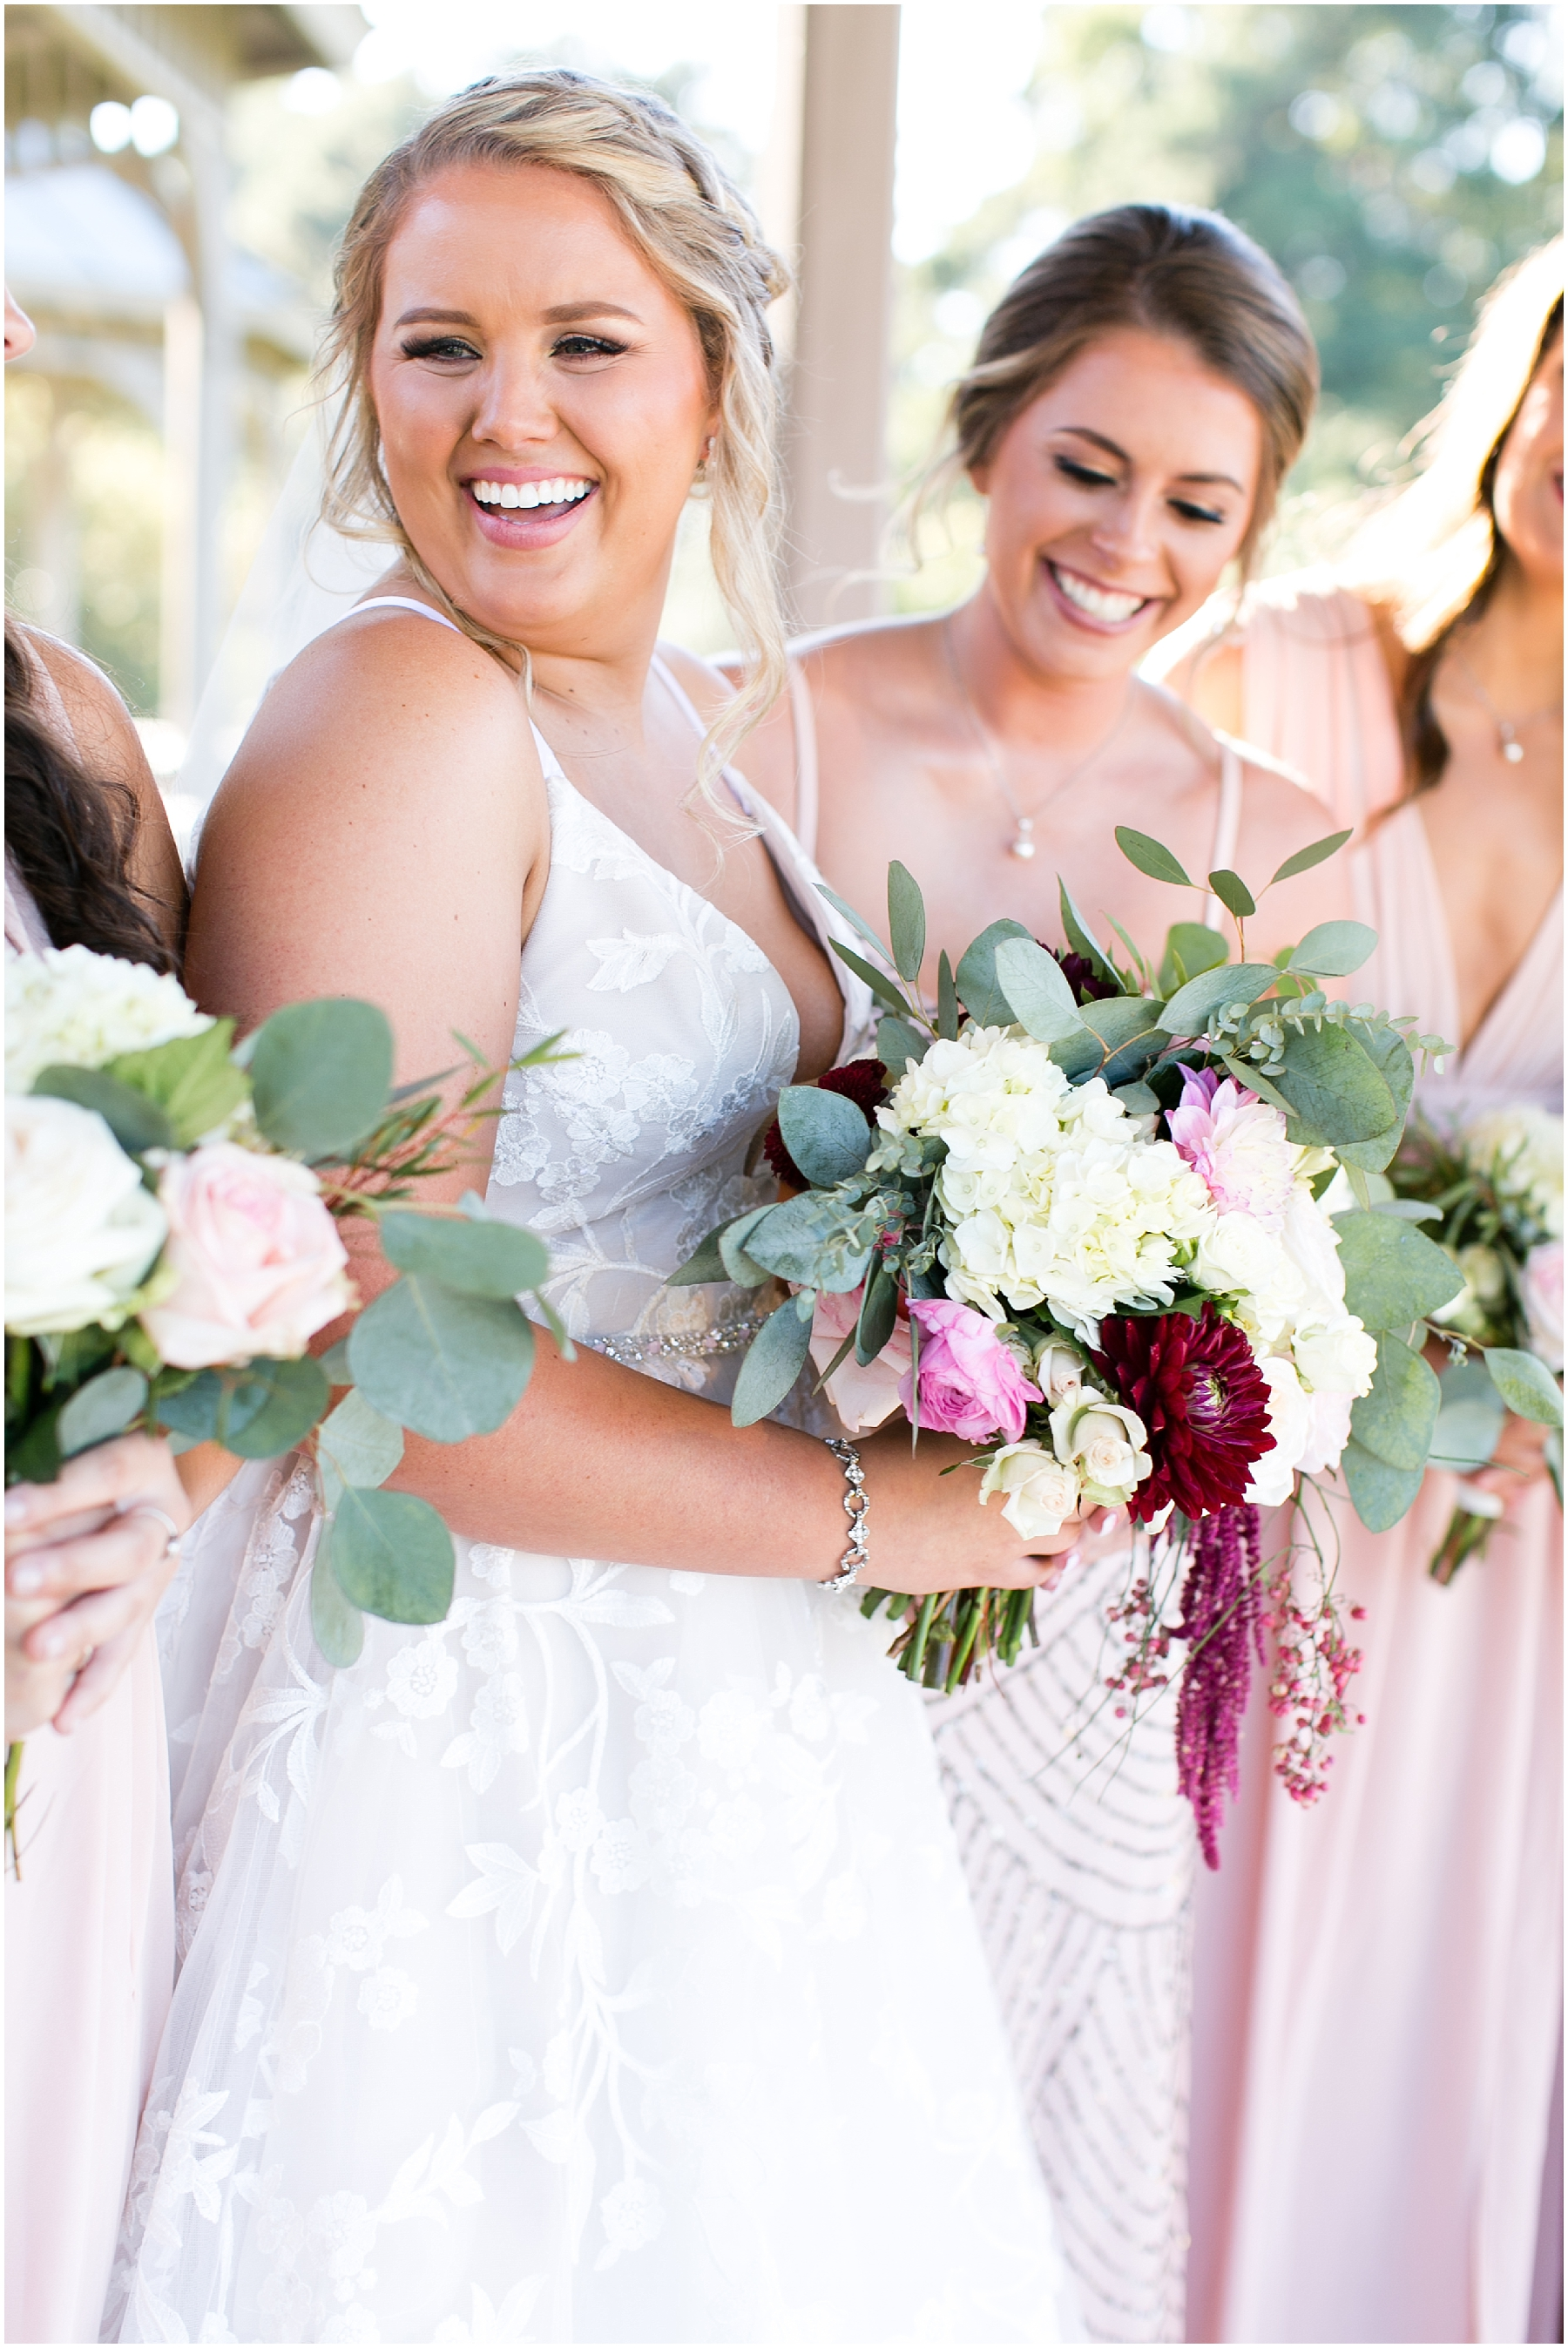 bridal party portraits at norfolk botanical gardens wedding day, jessica ryan photography, fluttering flowers